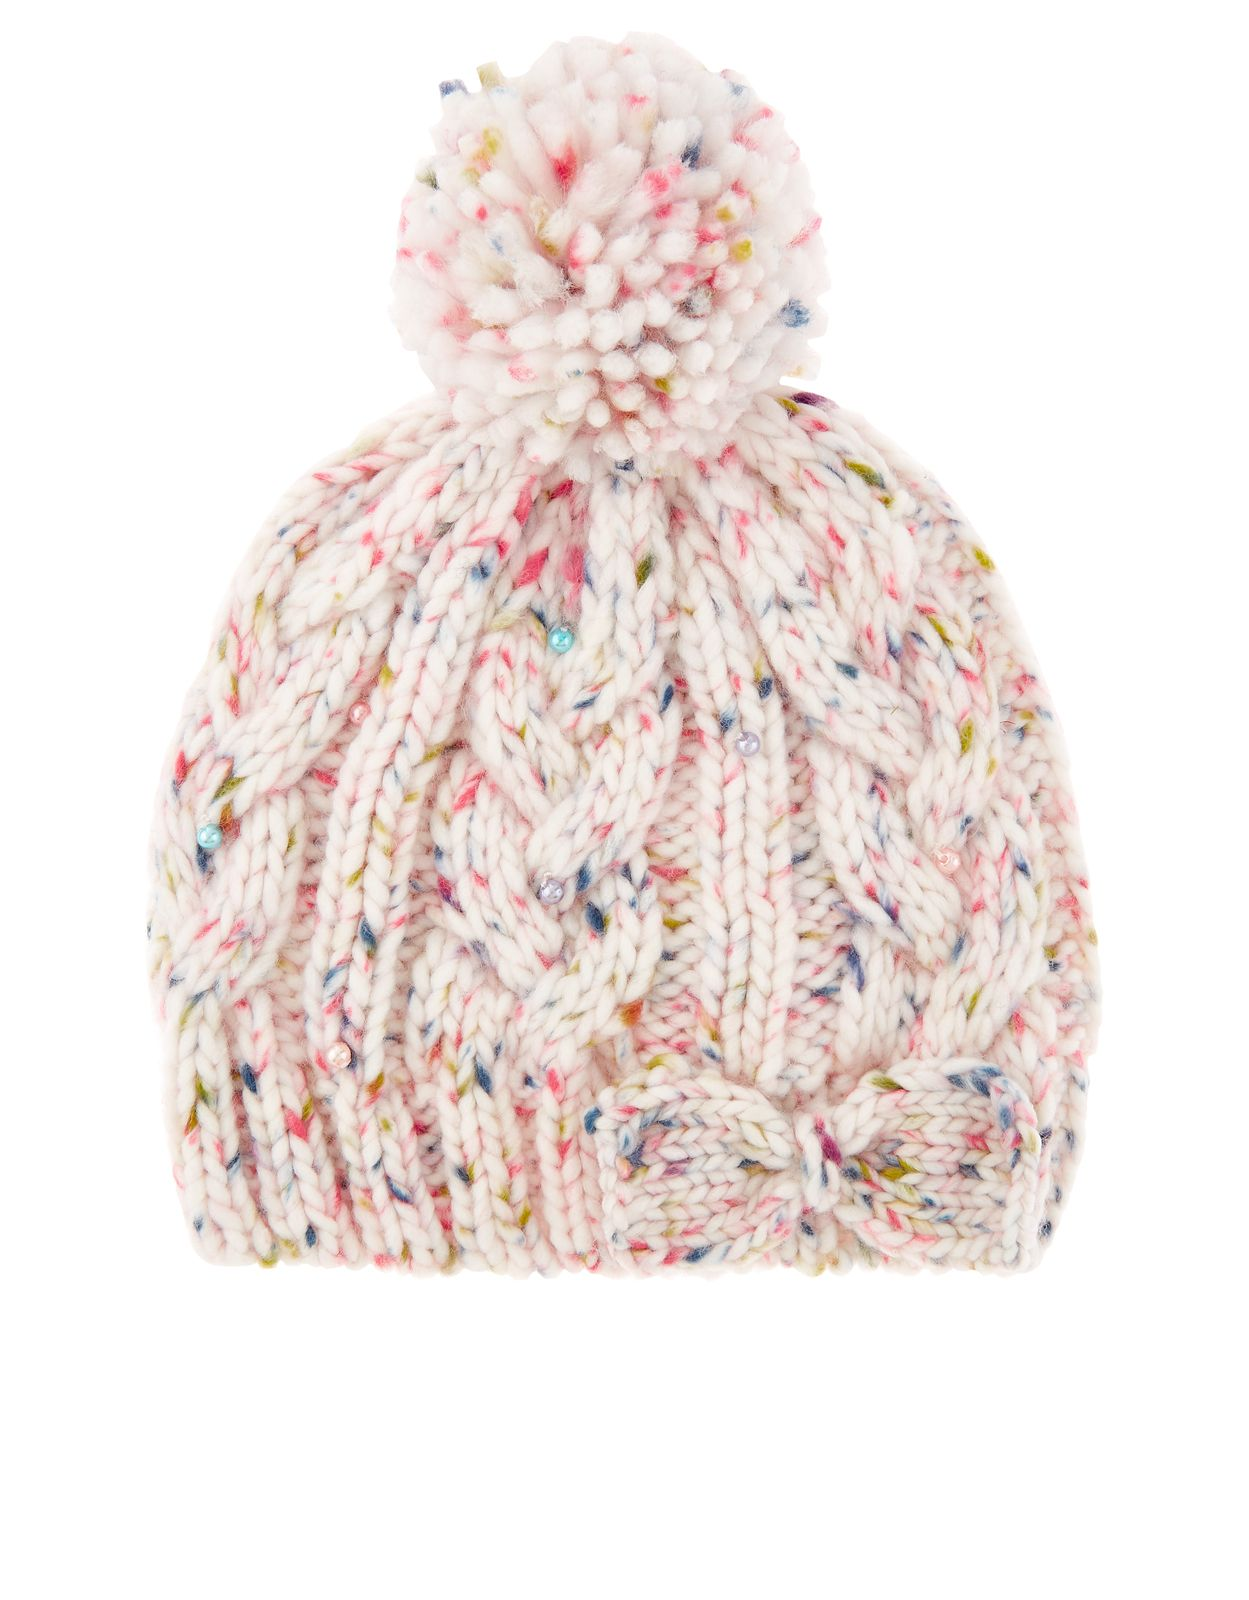 8d0eb038de4 Our cute and cosy speckled beanie hat for girls is decorated with a 3D bow  appliqué